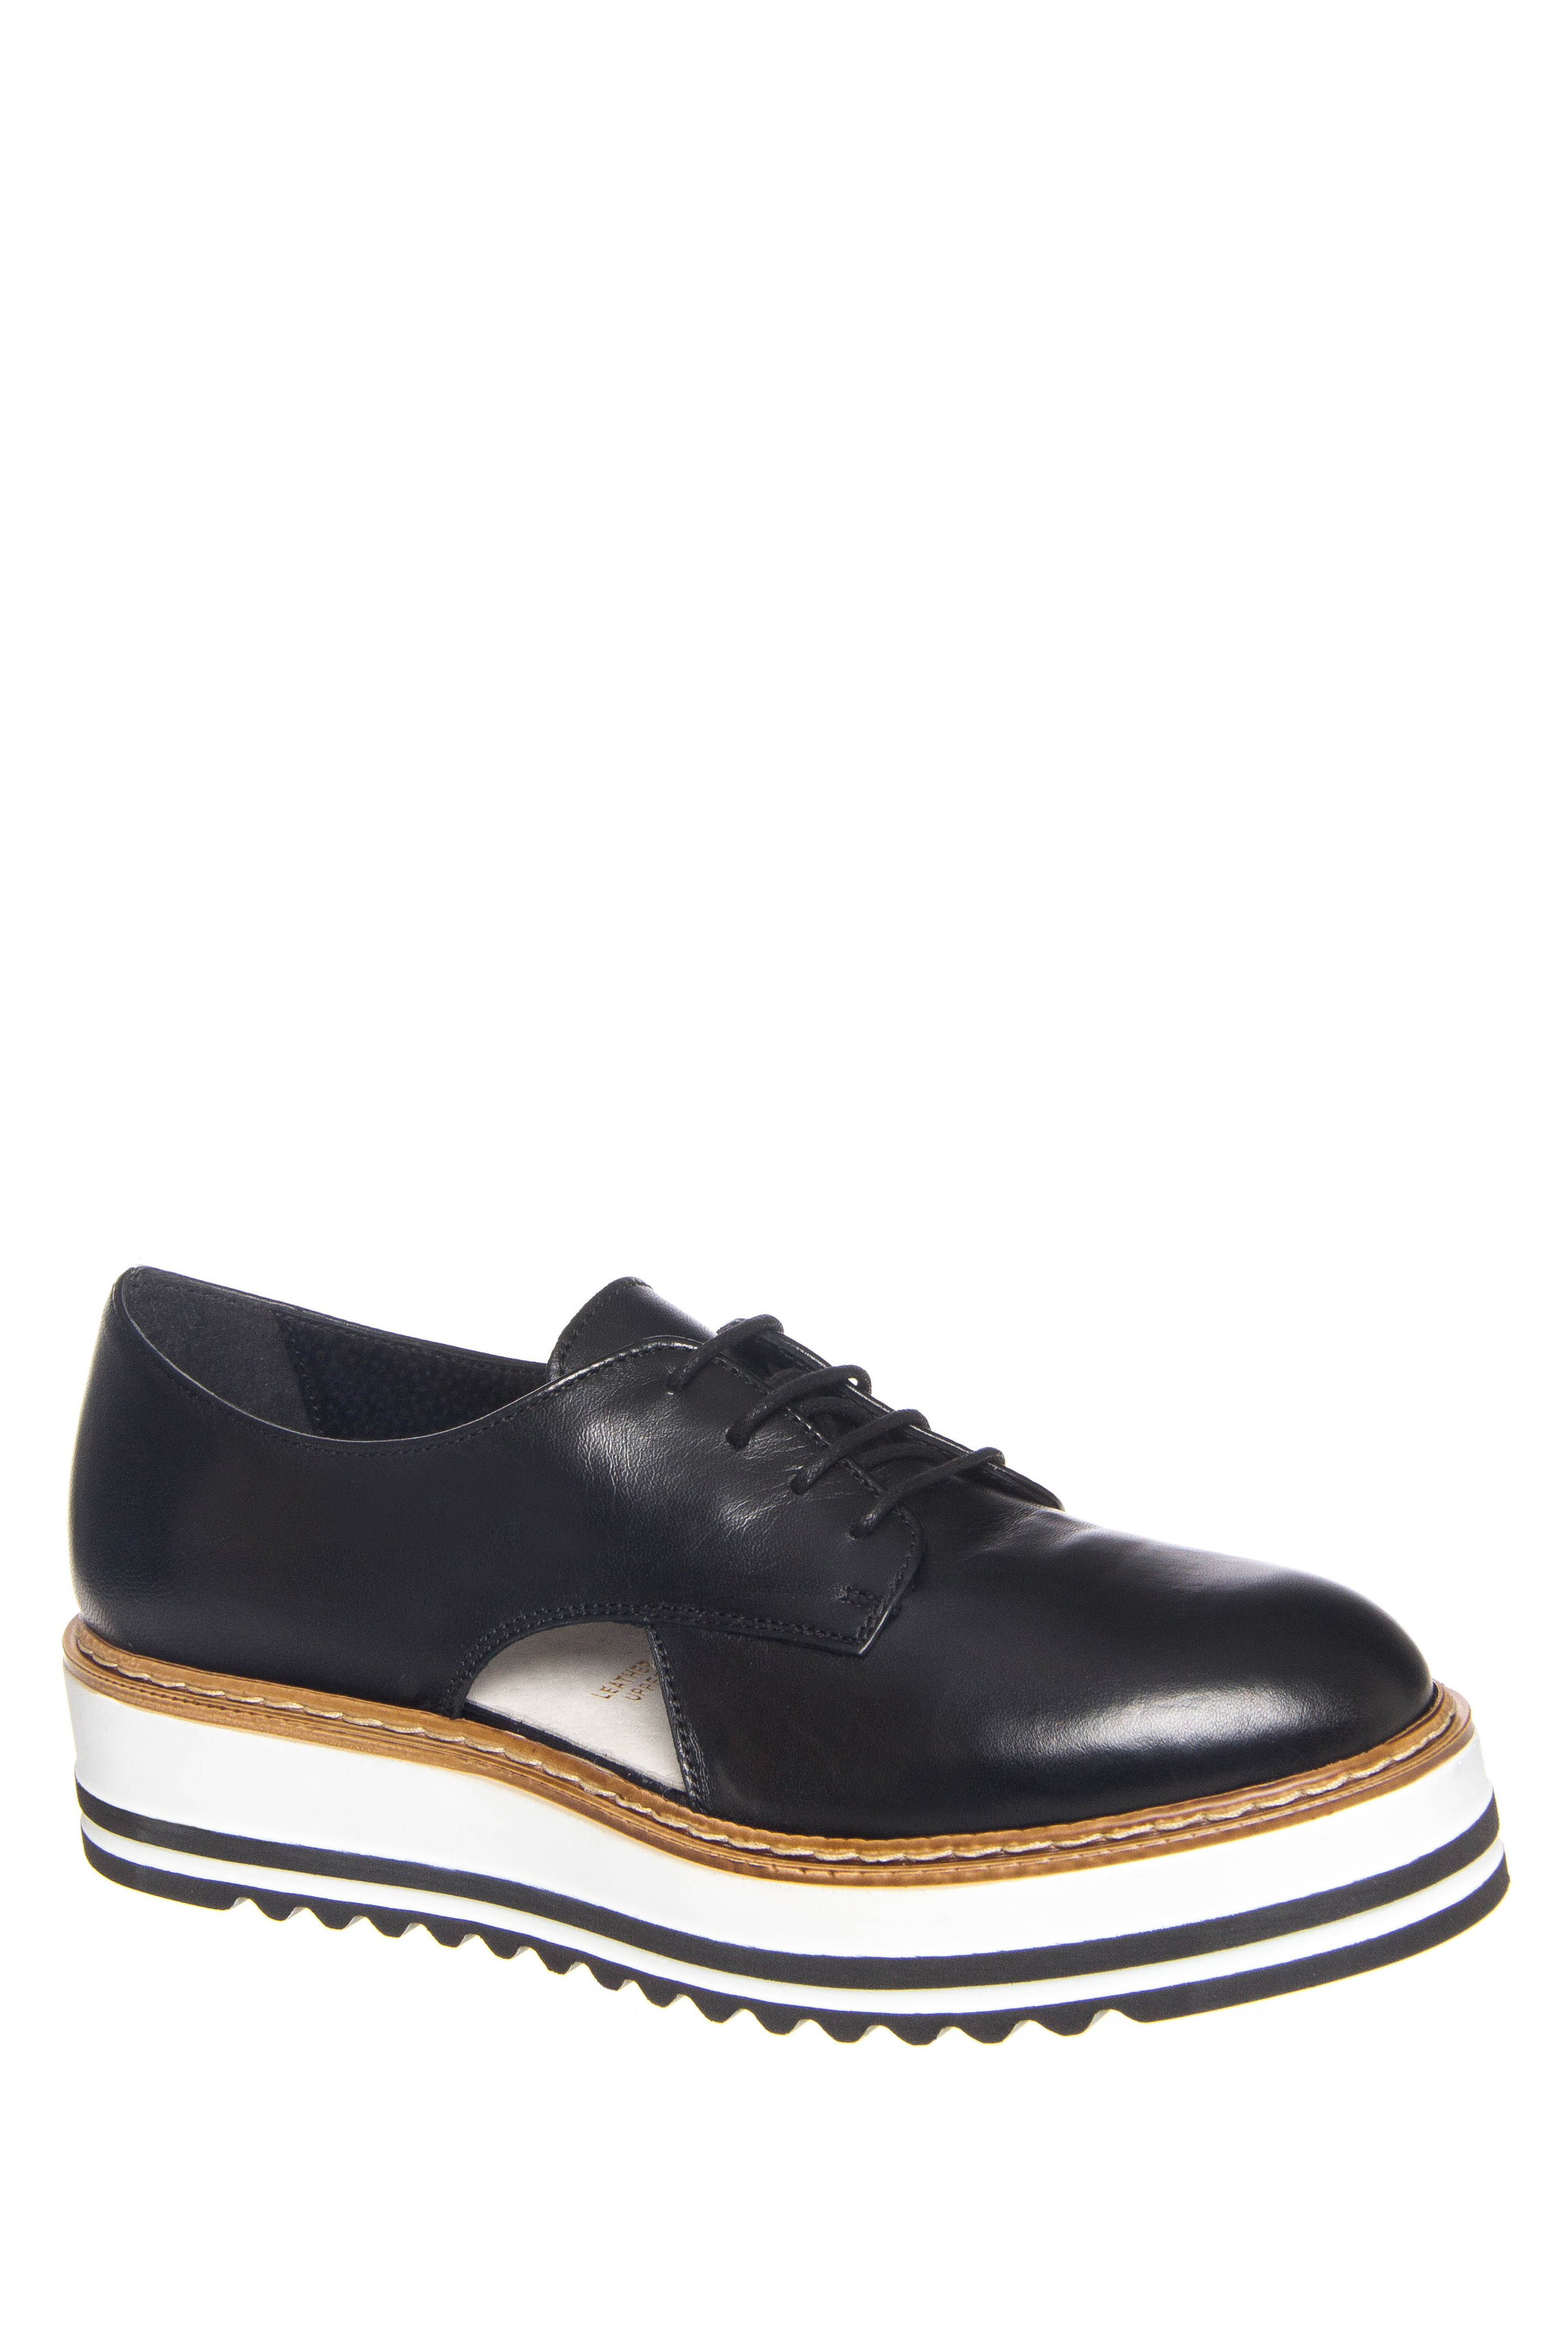 Summit by White Mountain Brody Double Stripe Platform Oxford - Black